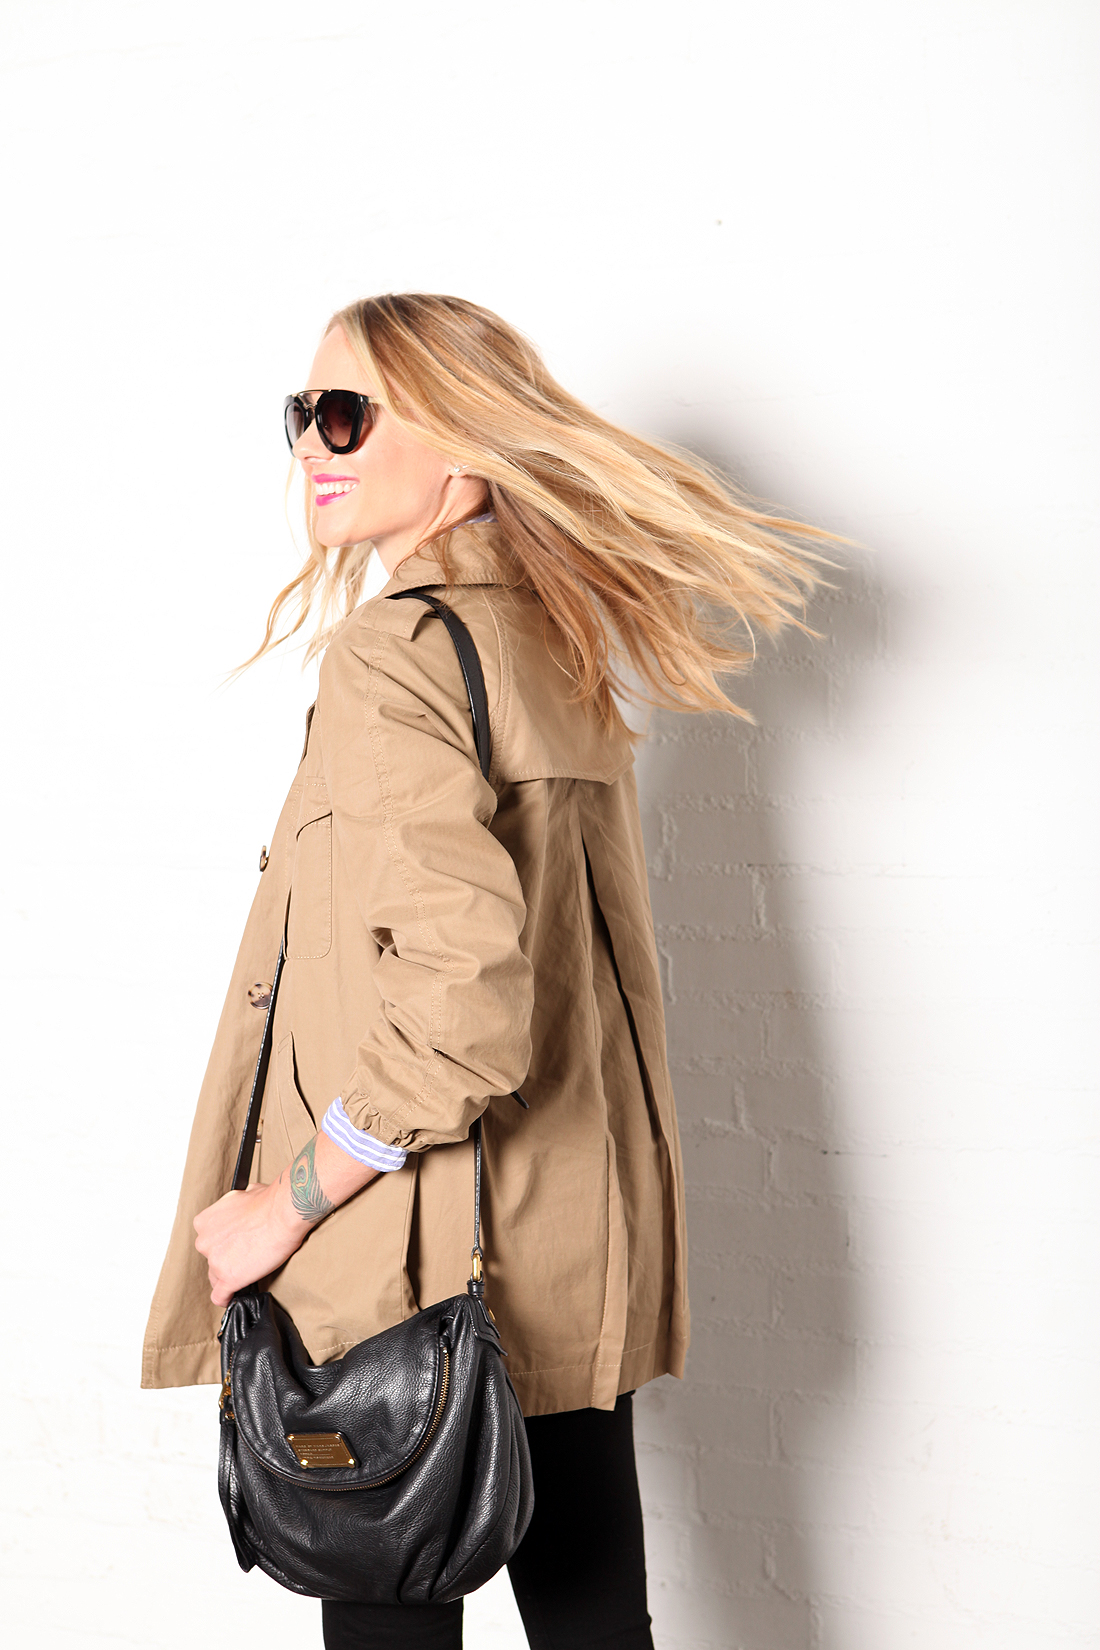 fashion-jackson-loft-cargo-swing-trench-prada-retro-sunglasses-marc-by-marc-jacobs-natasha-handbag